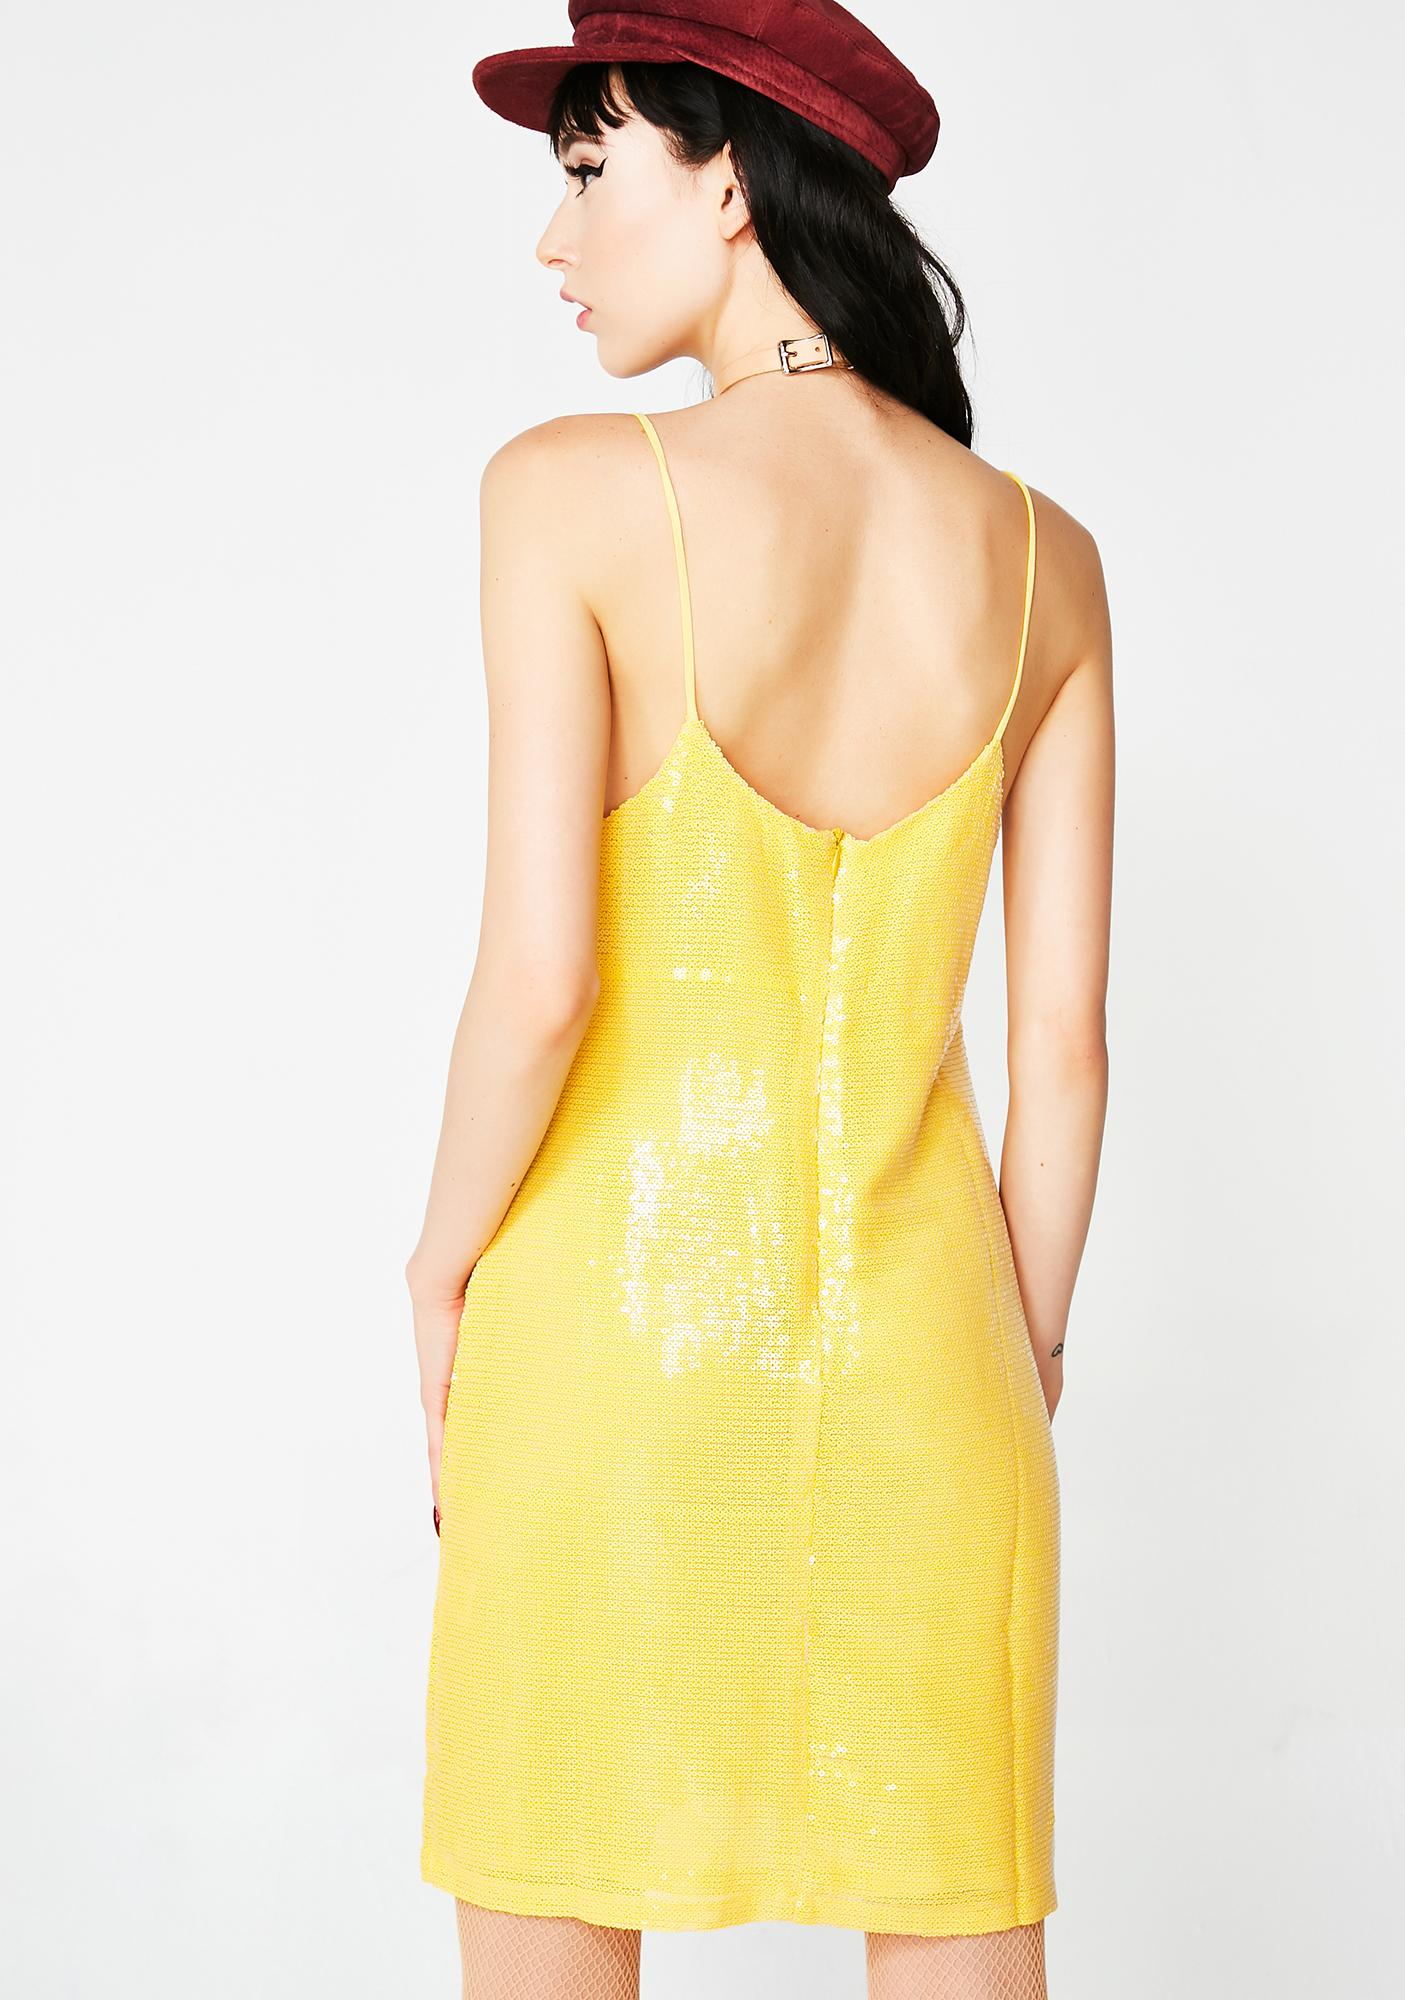 Glamorous Shot Caller Sequin Dress